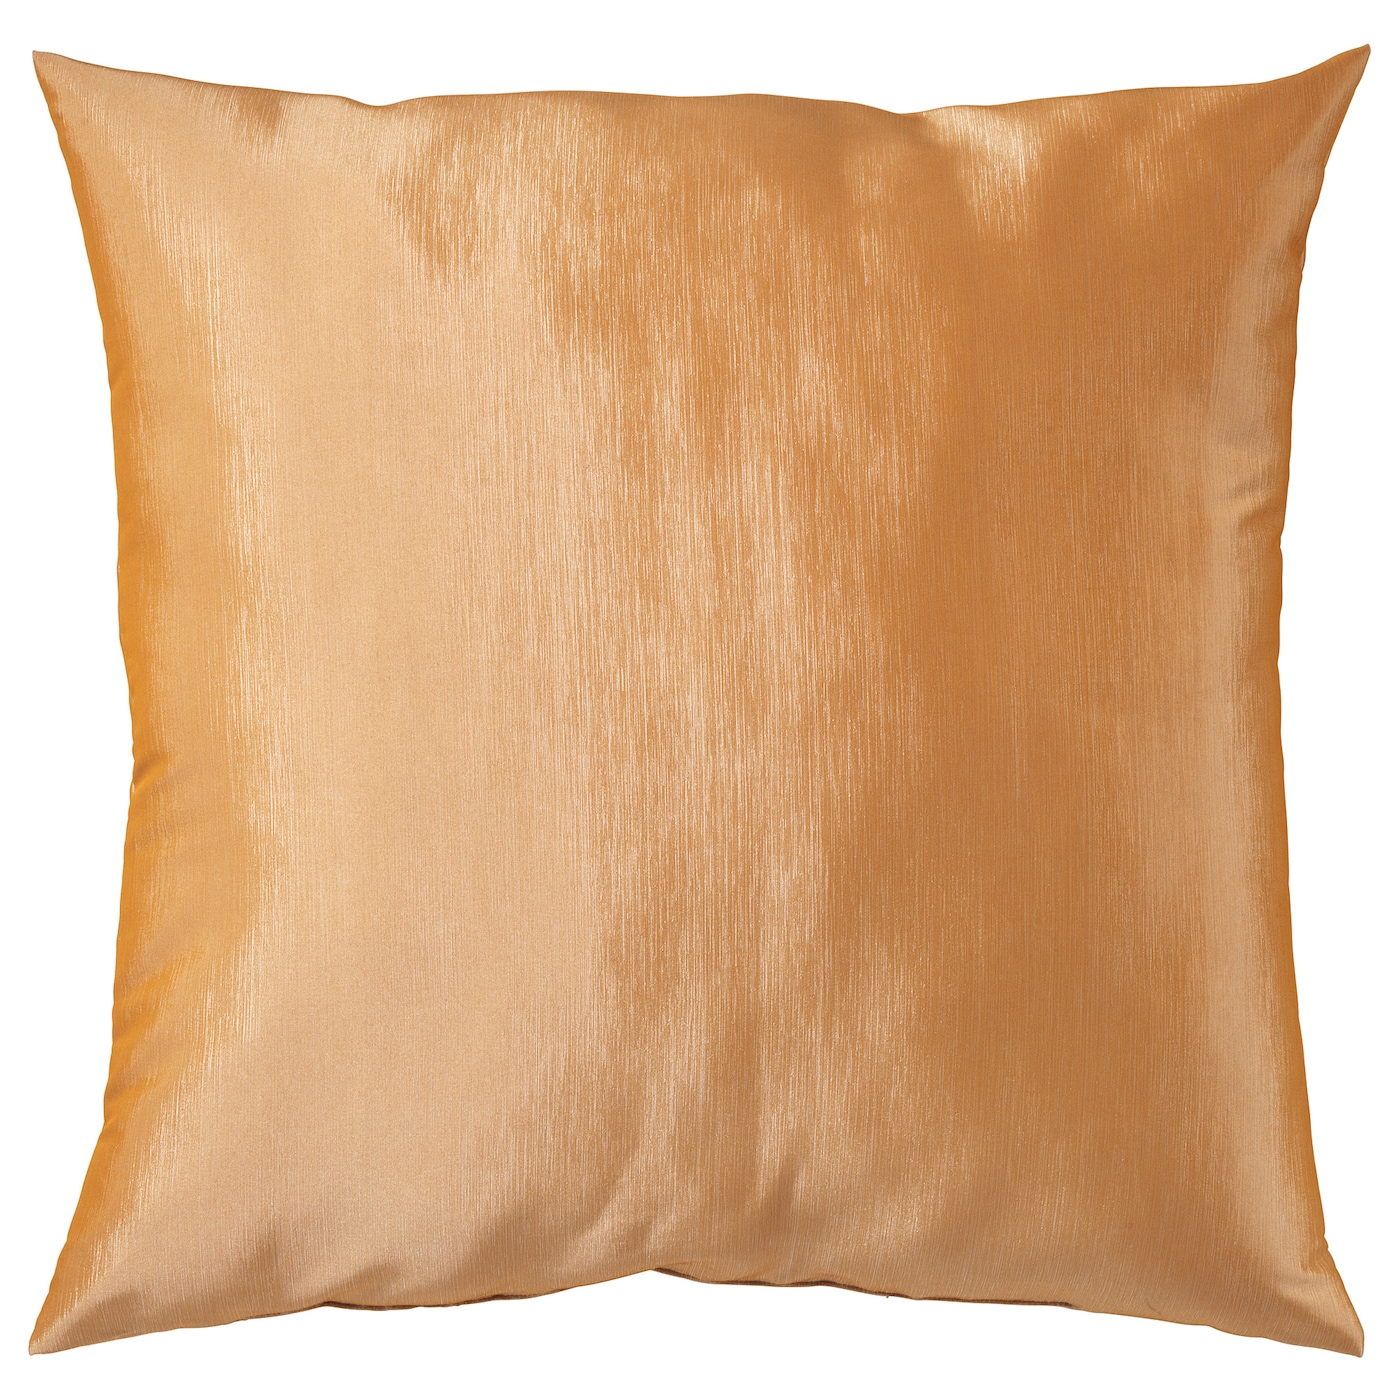 IKEA ULLKAKTUS cushion The polyester filling holds its shape and gives your body soft support.